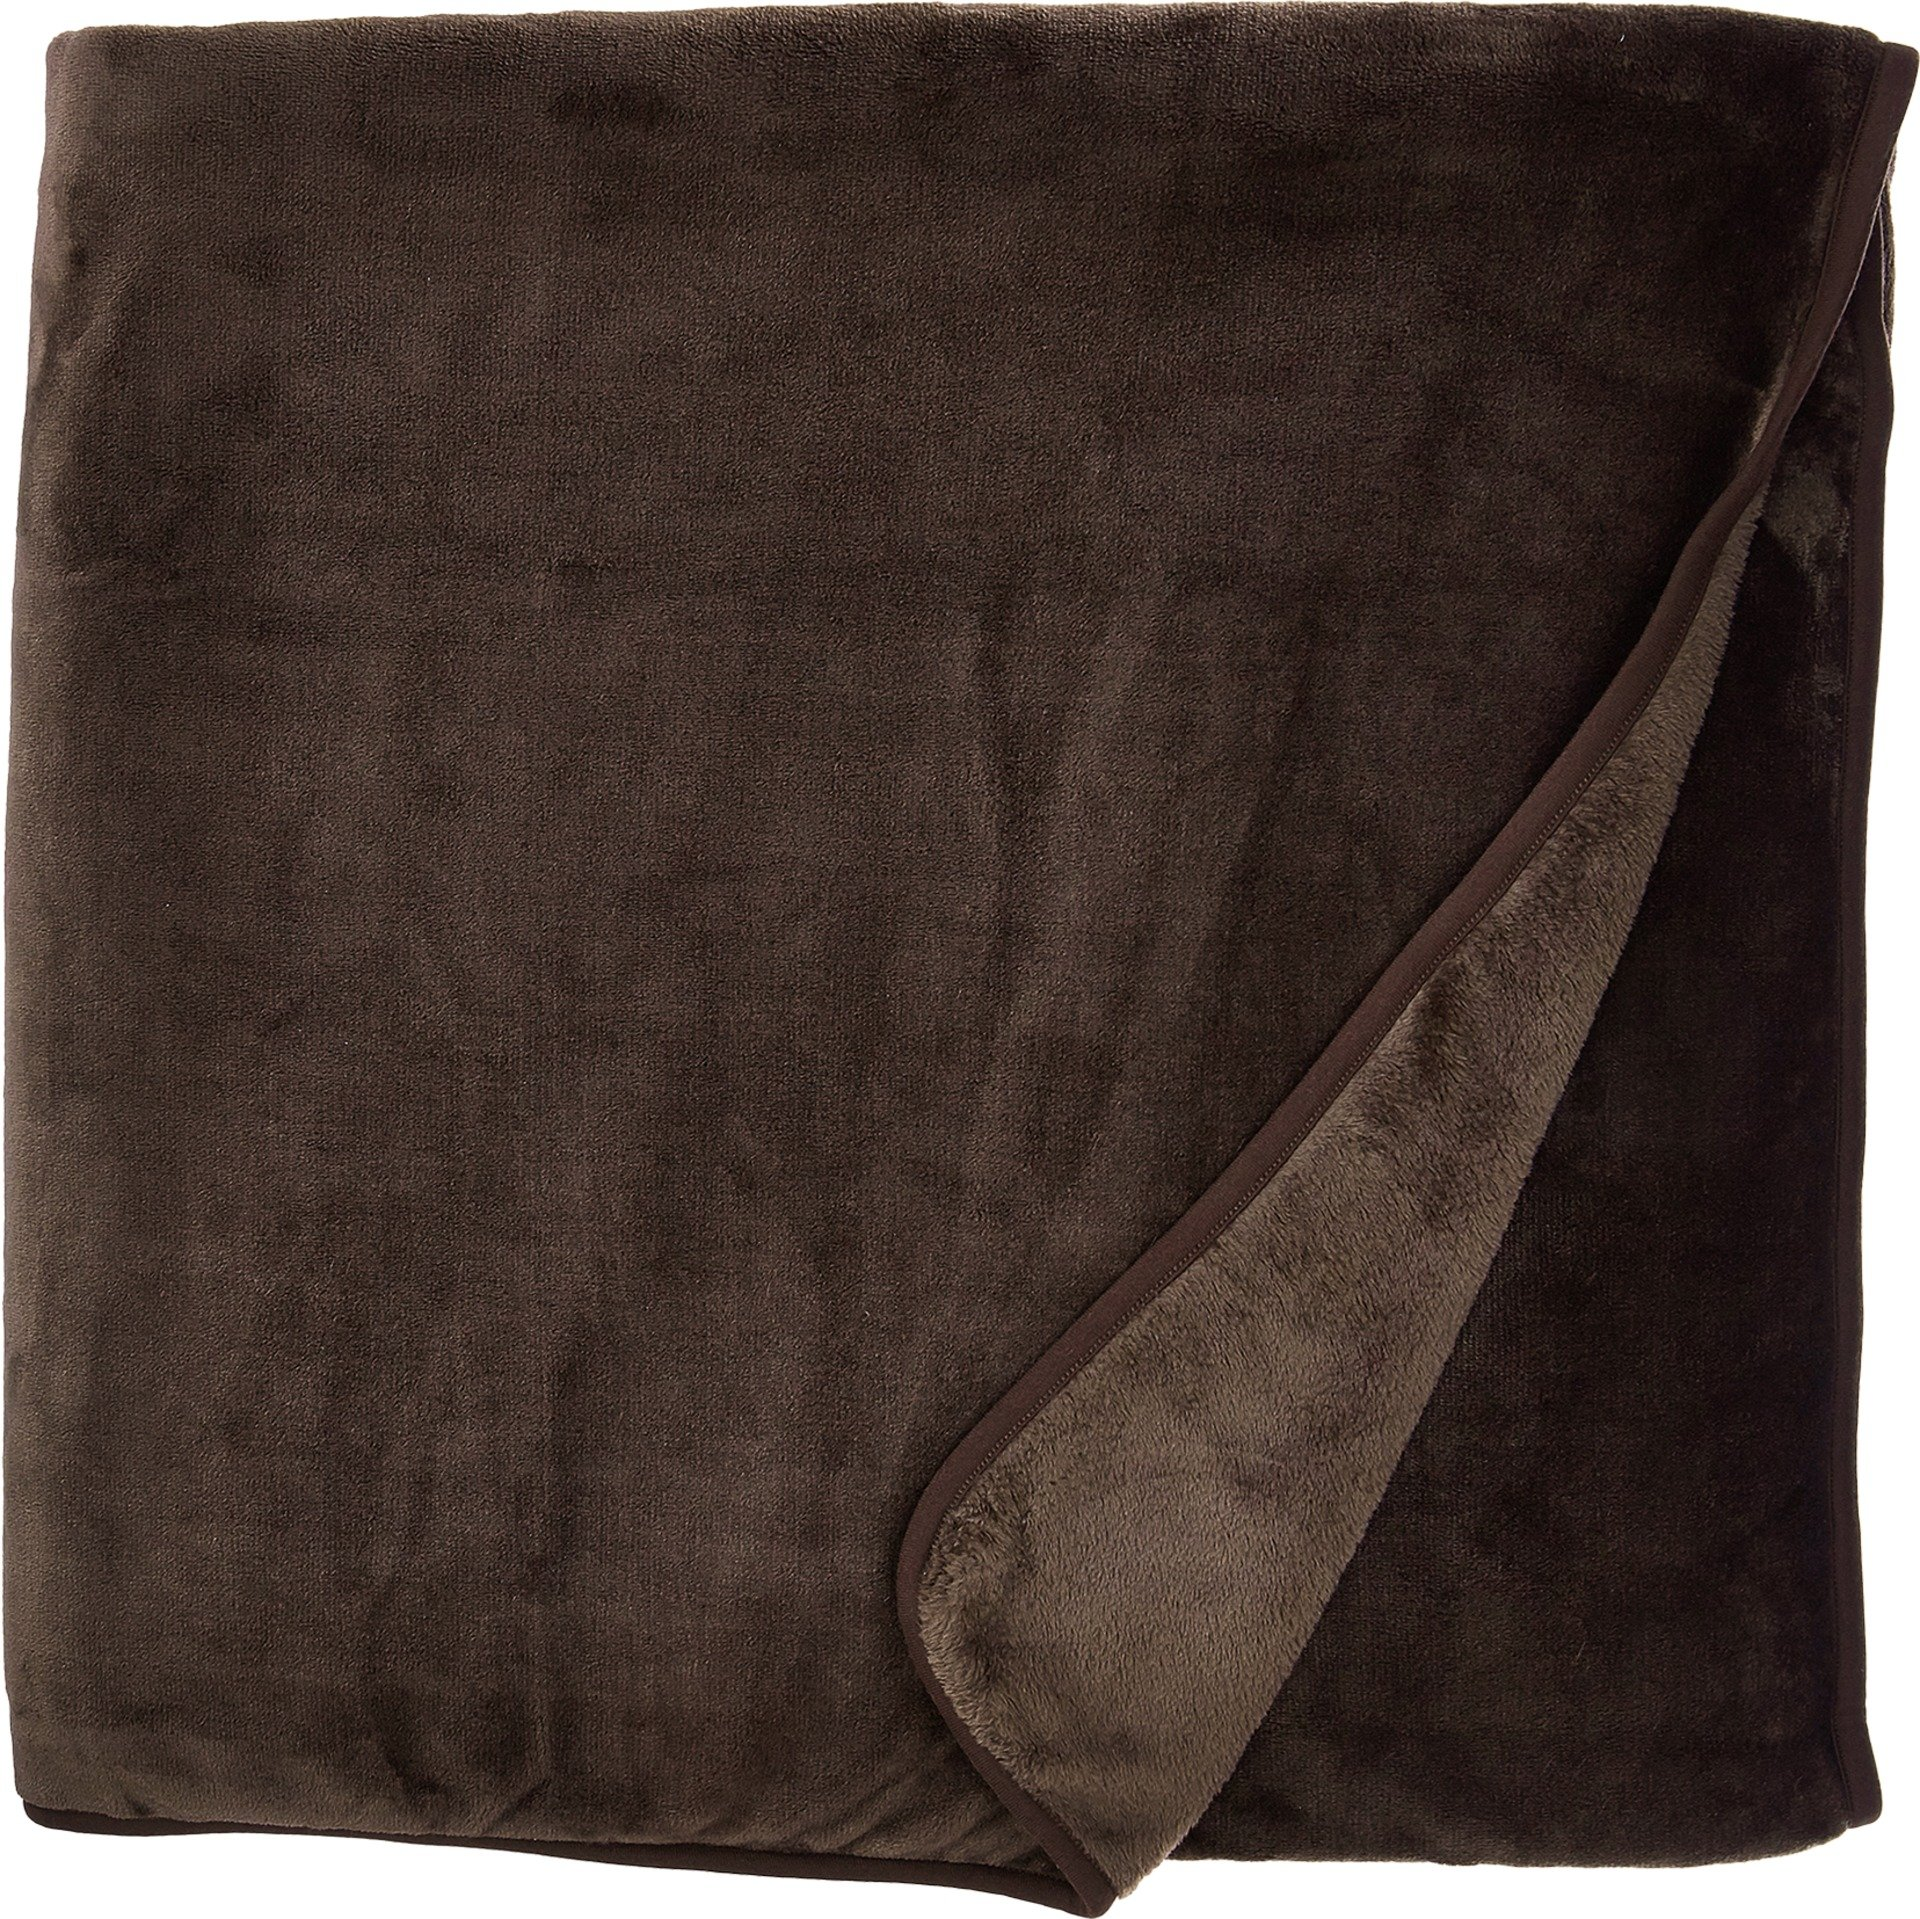 UGG Women's Duffield Large Spa Throw, Stout, O/S